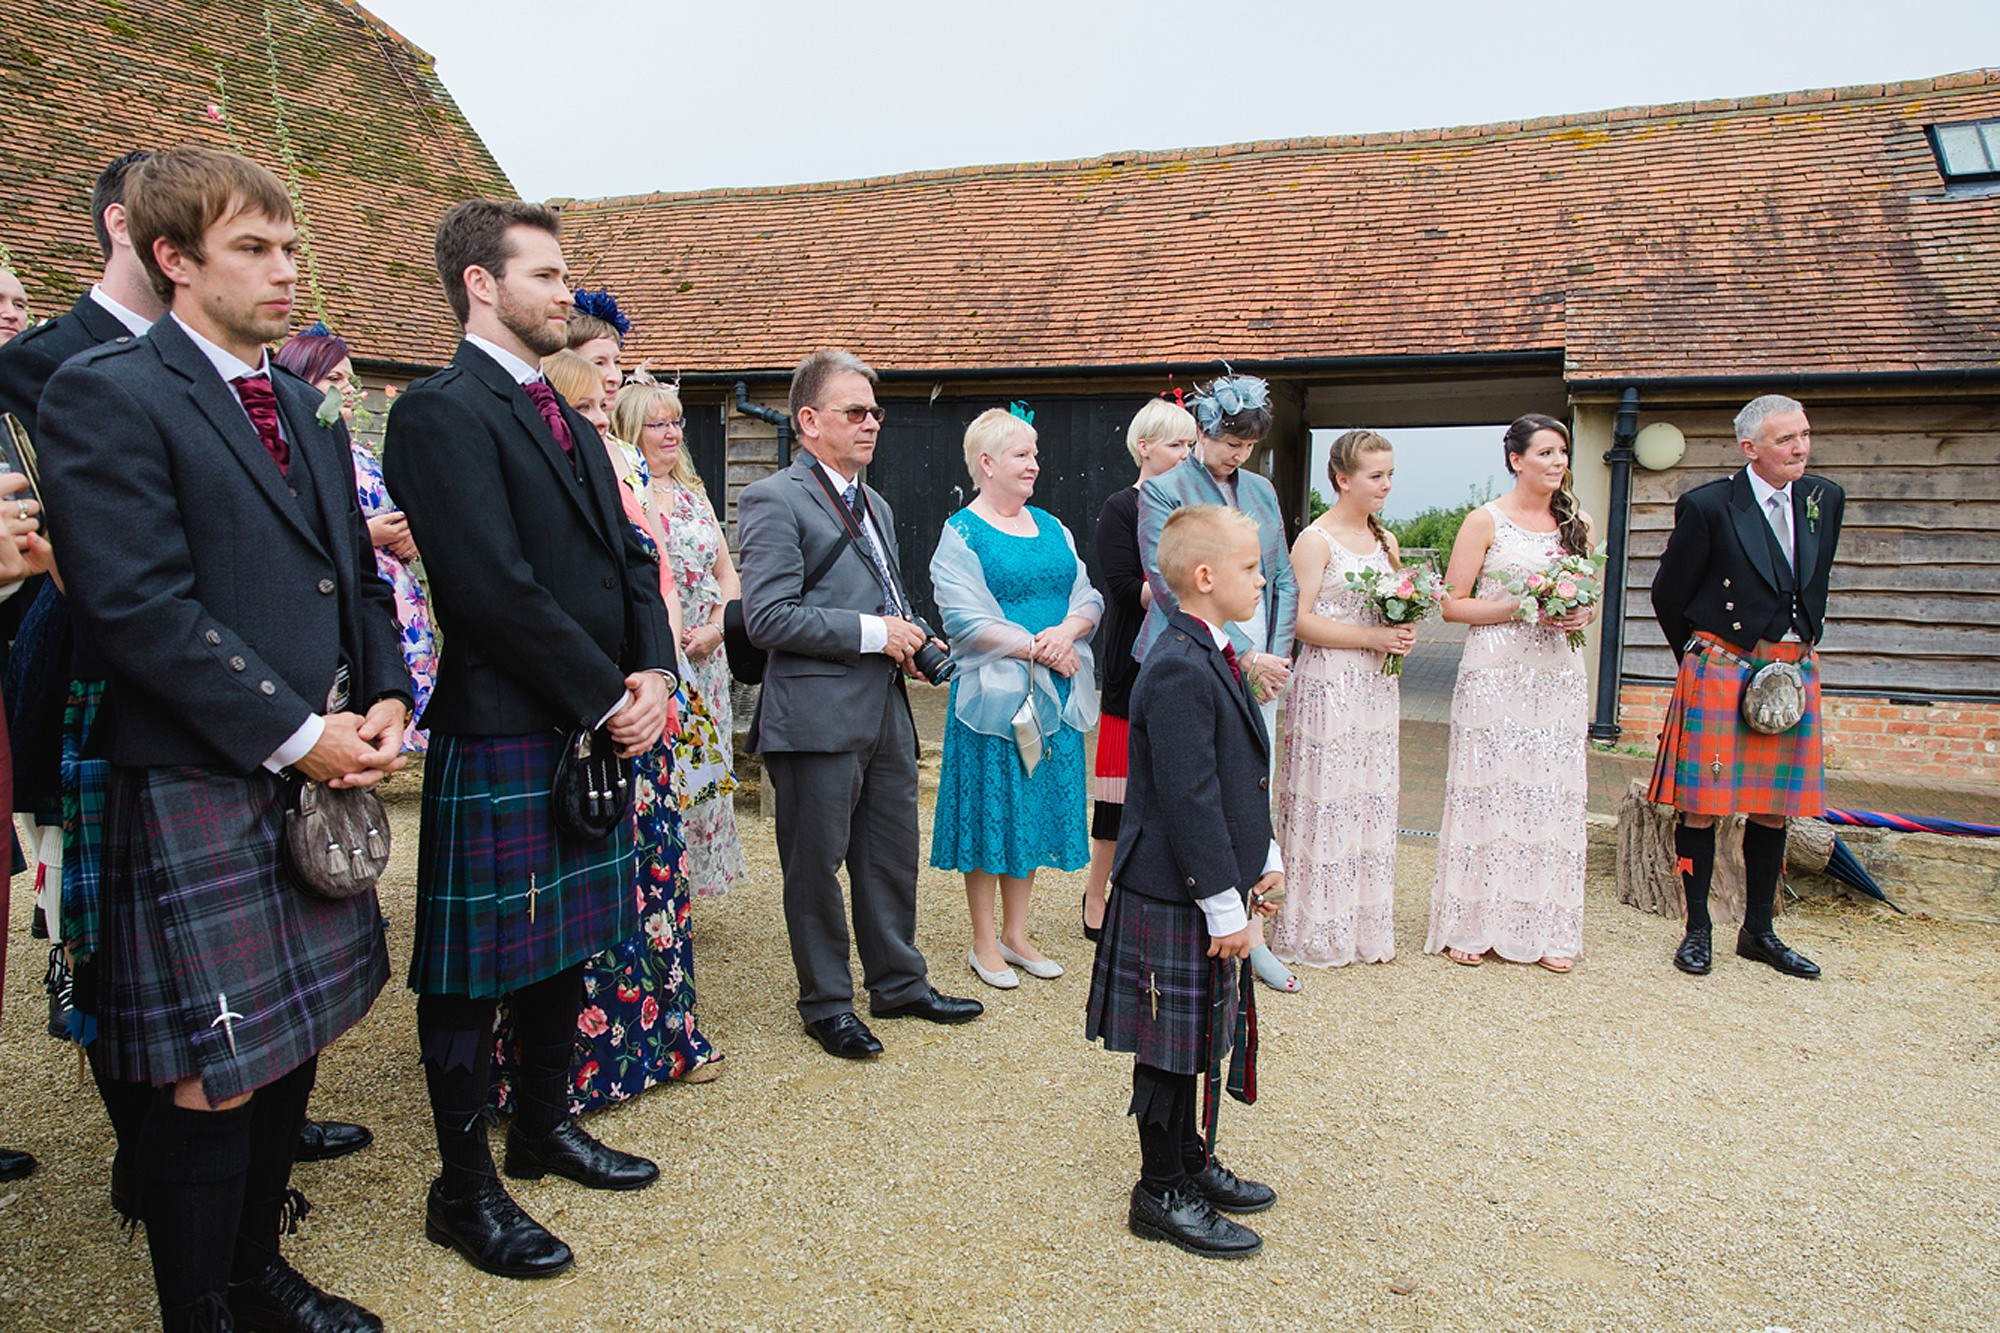 outdoor humanist wedding photography guests watching ceremony